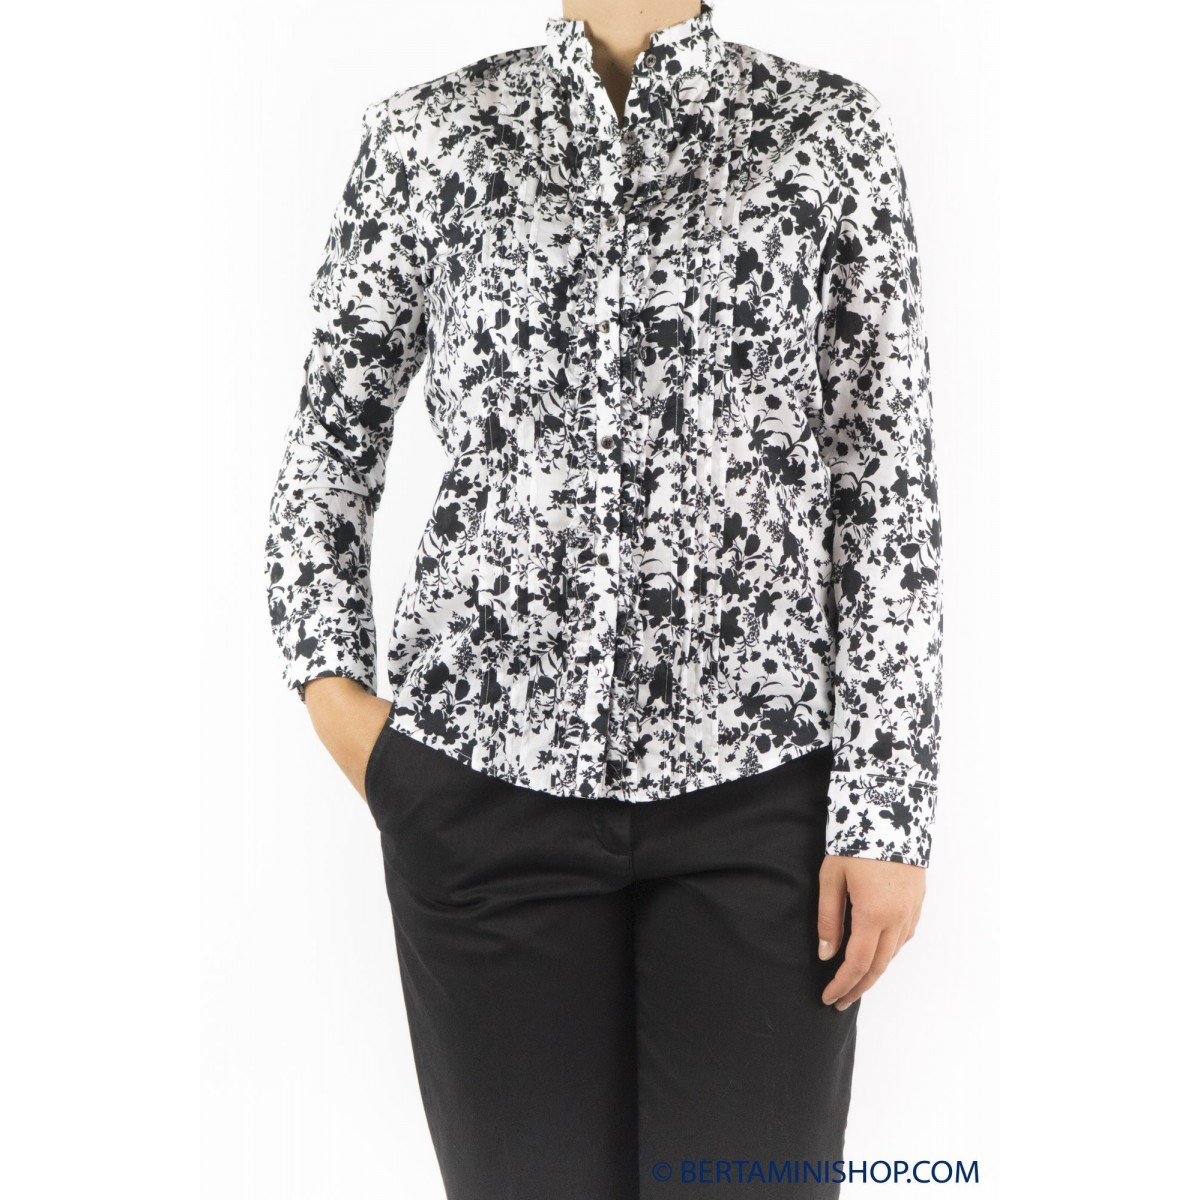 Blouse Department 5 Woman - D11C53 F1141